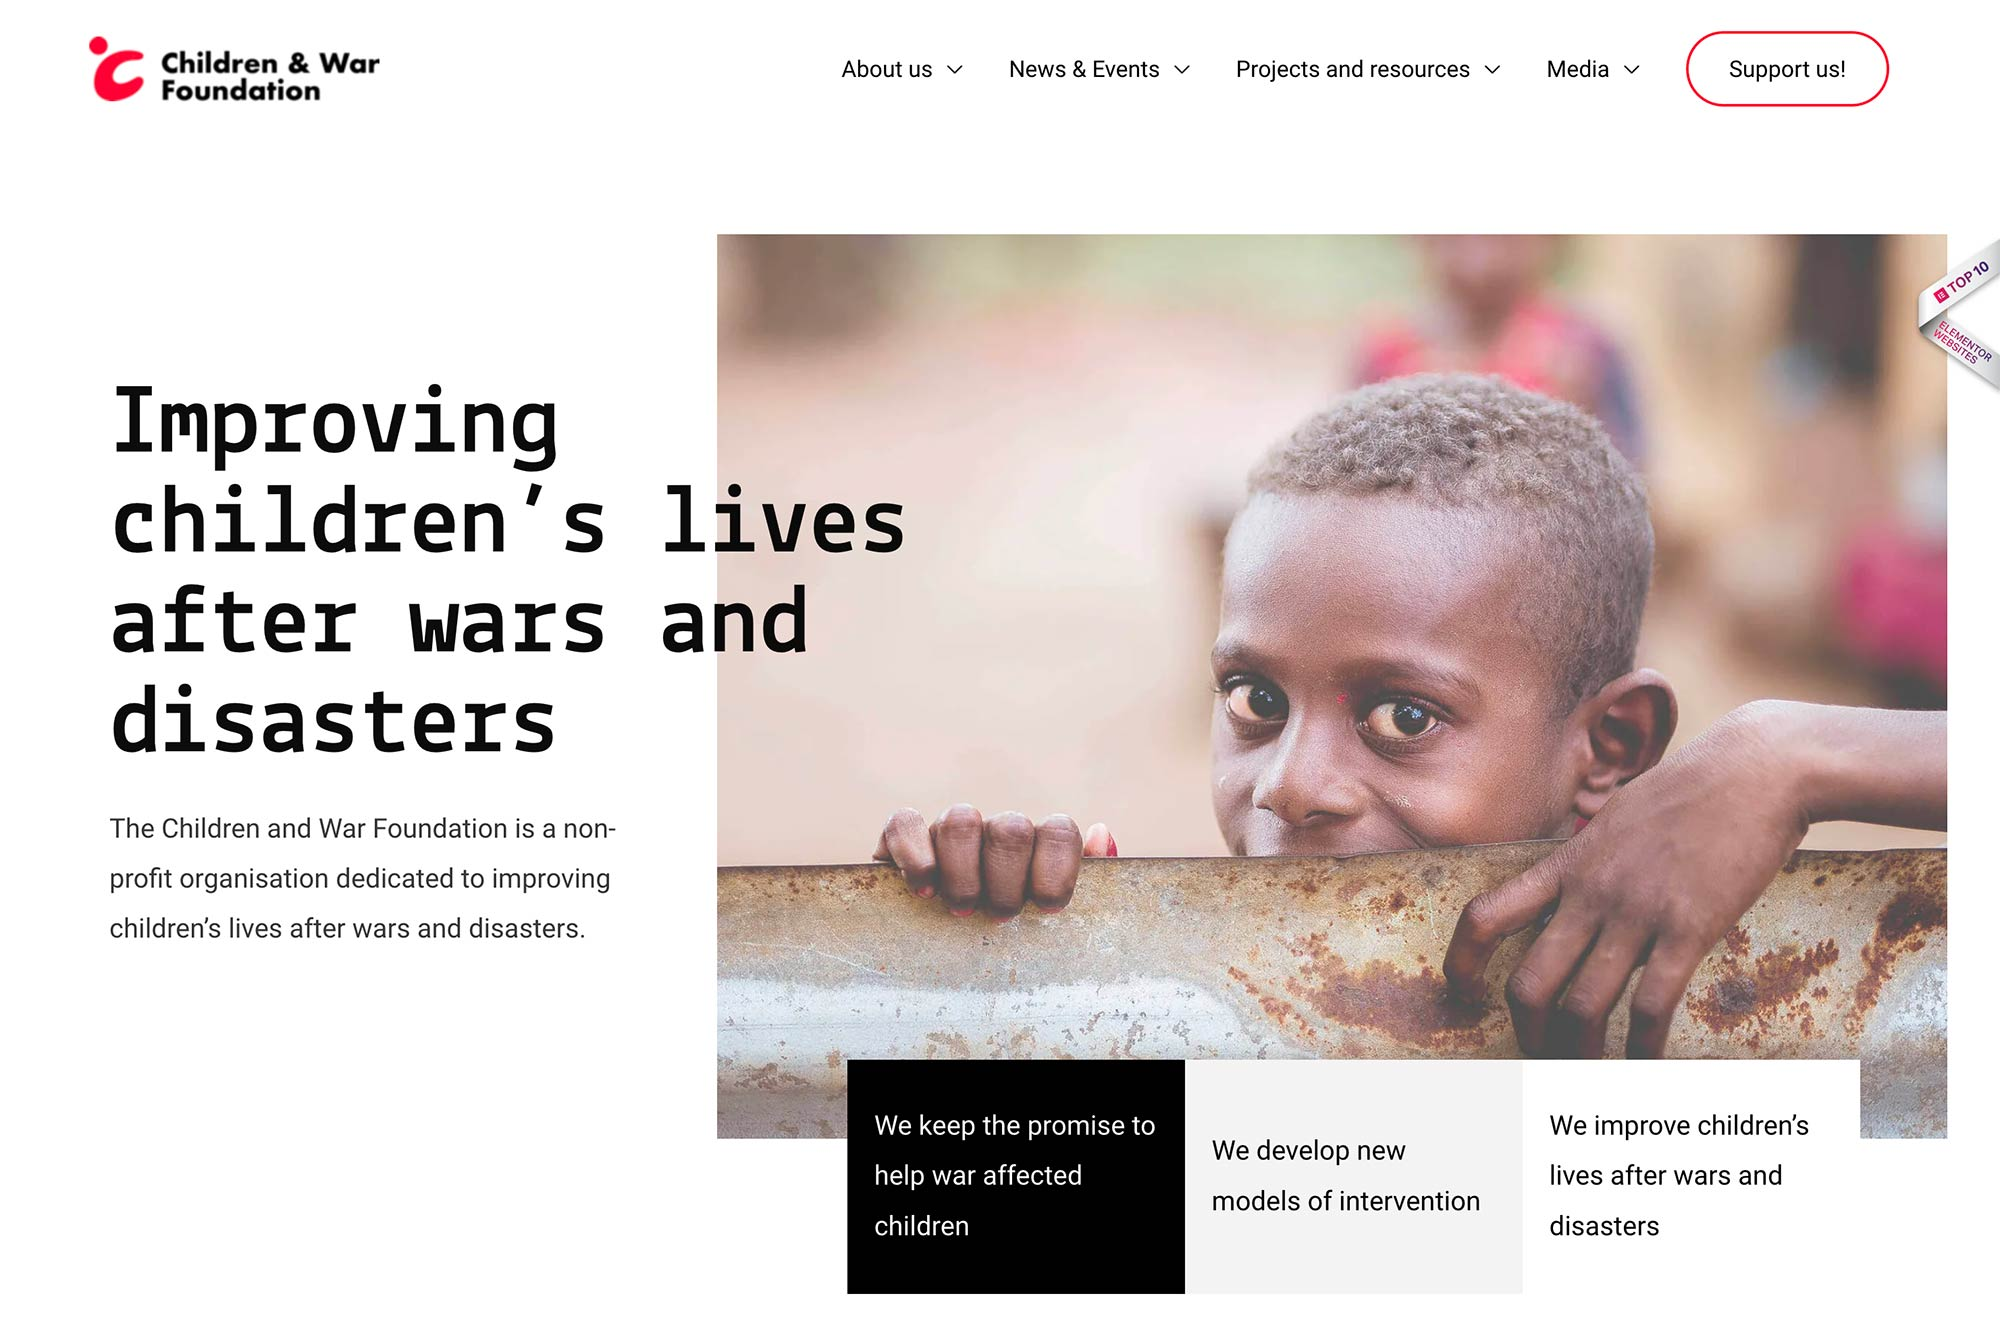 Children and War Foundation